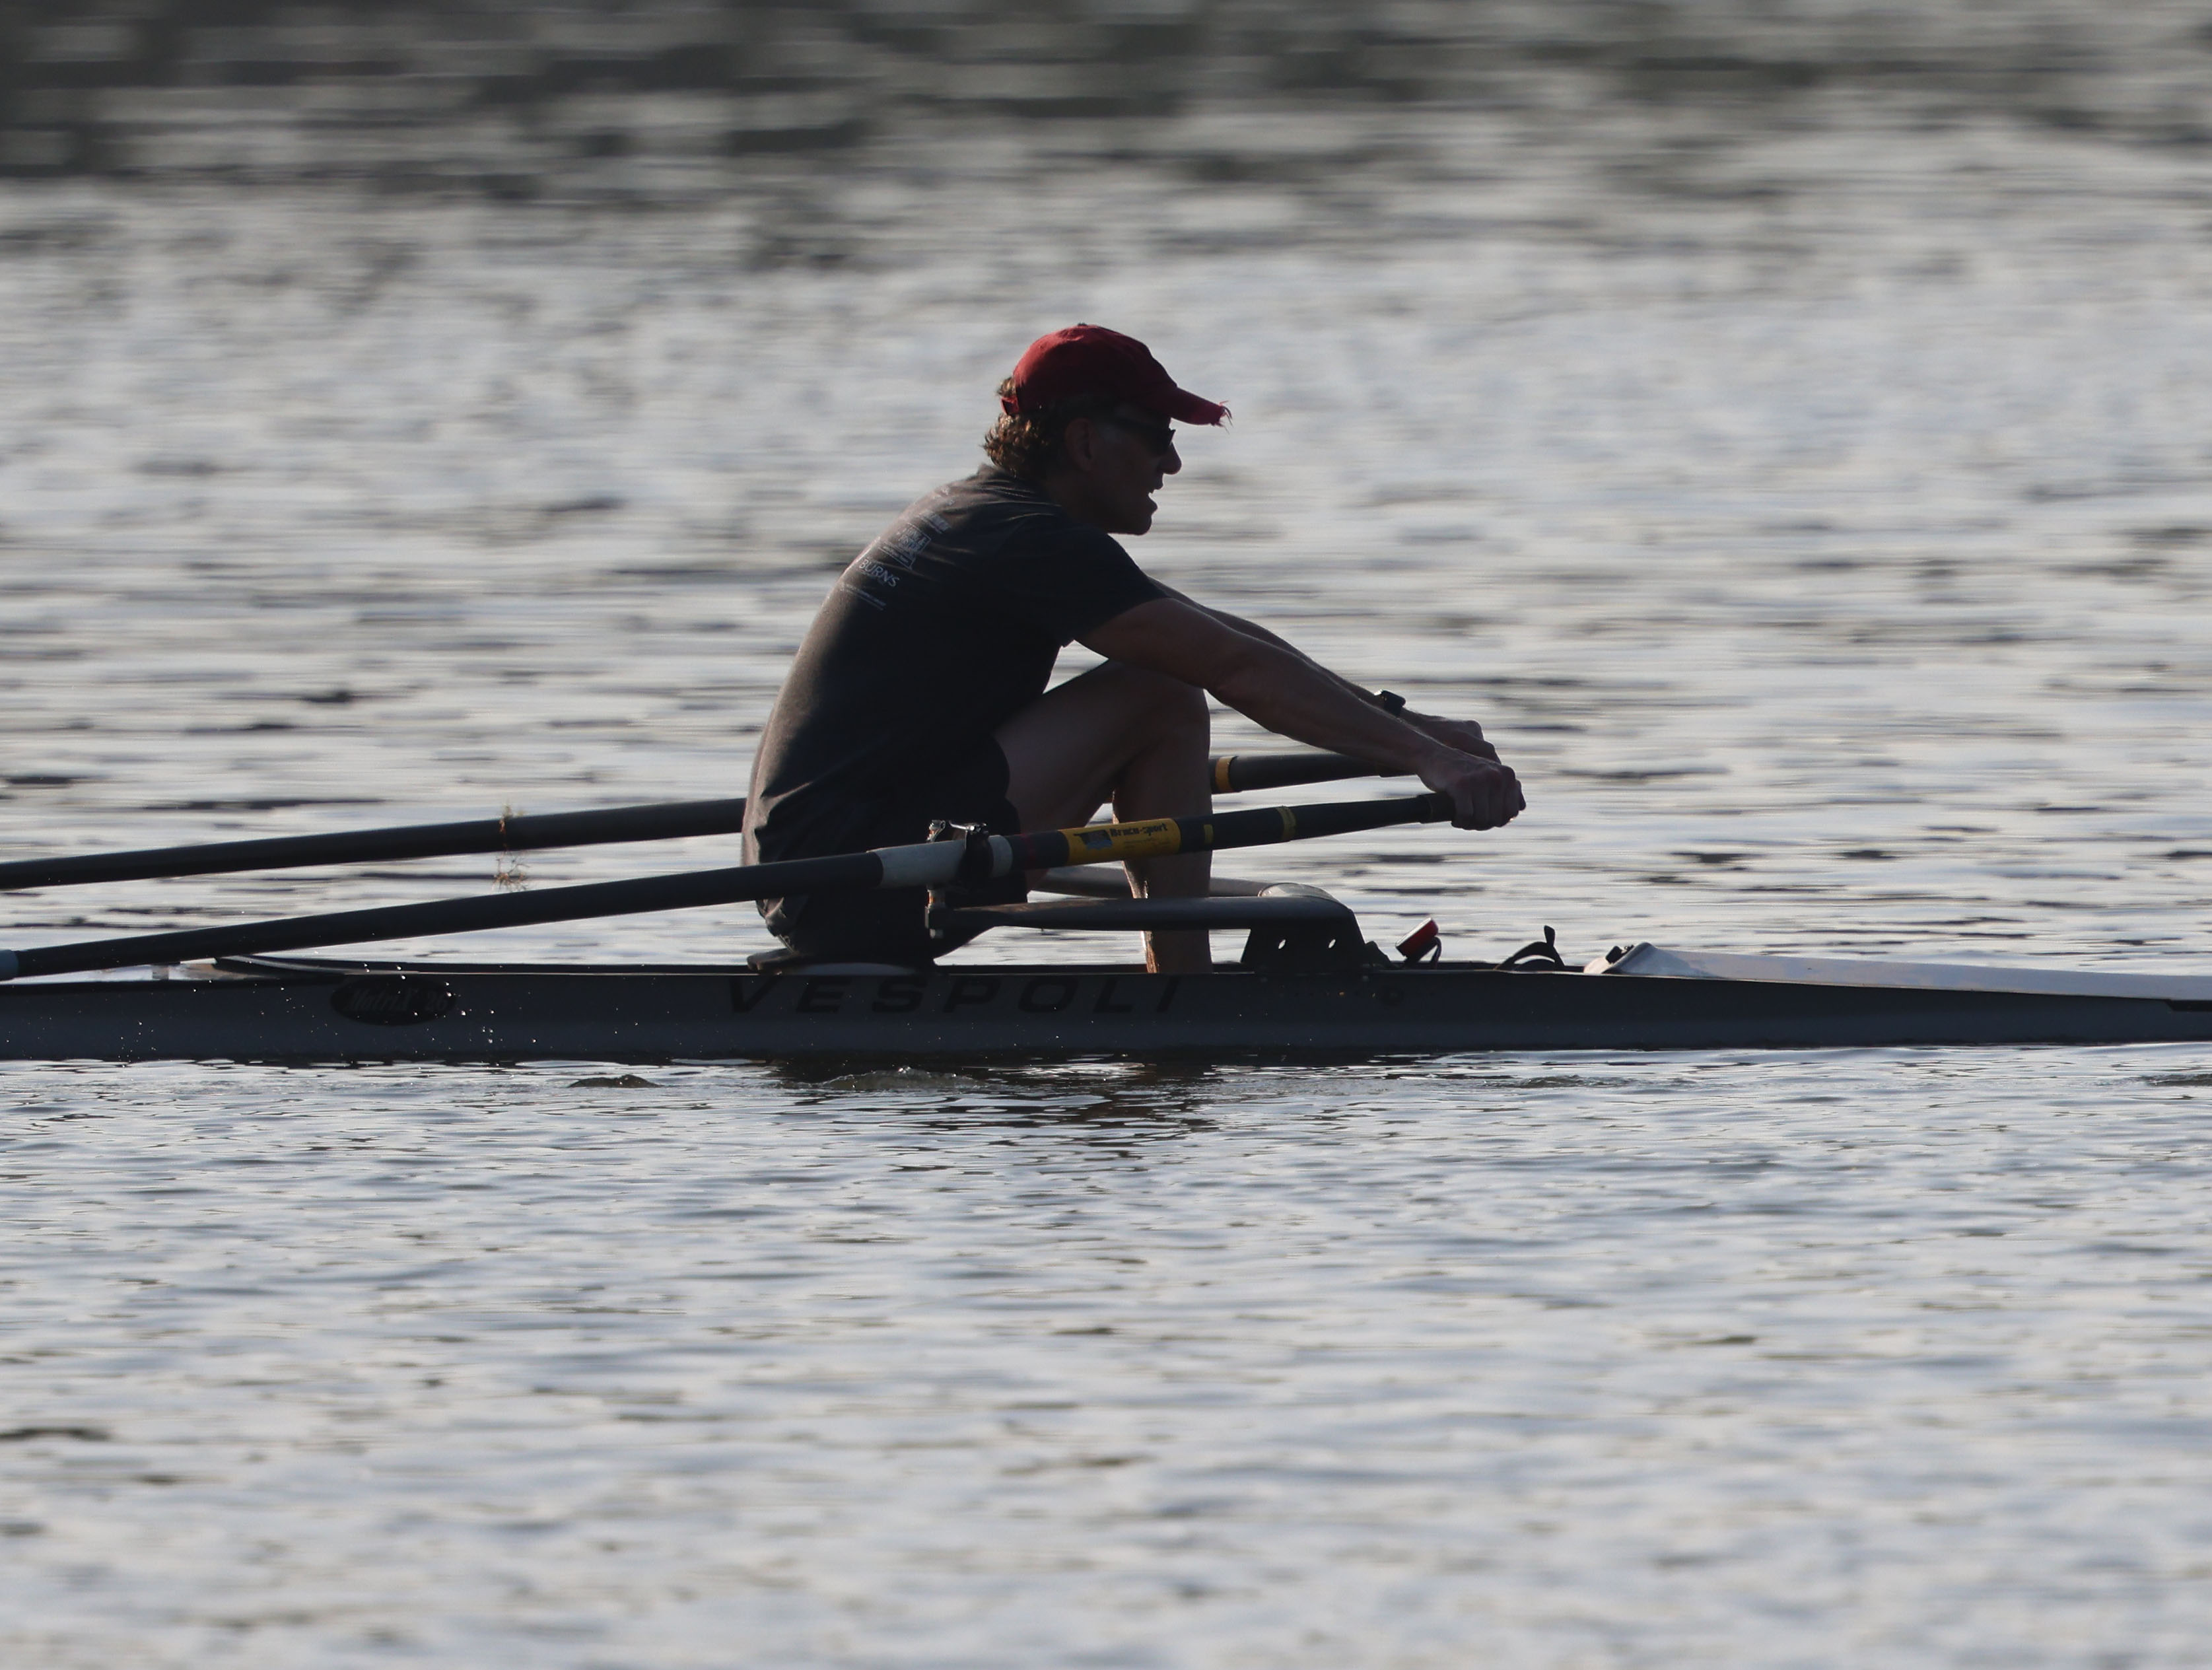 A rower